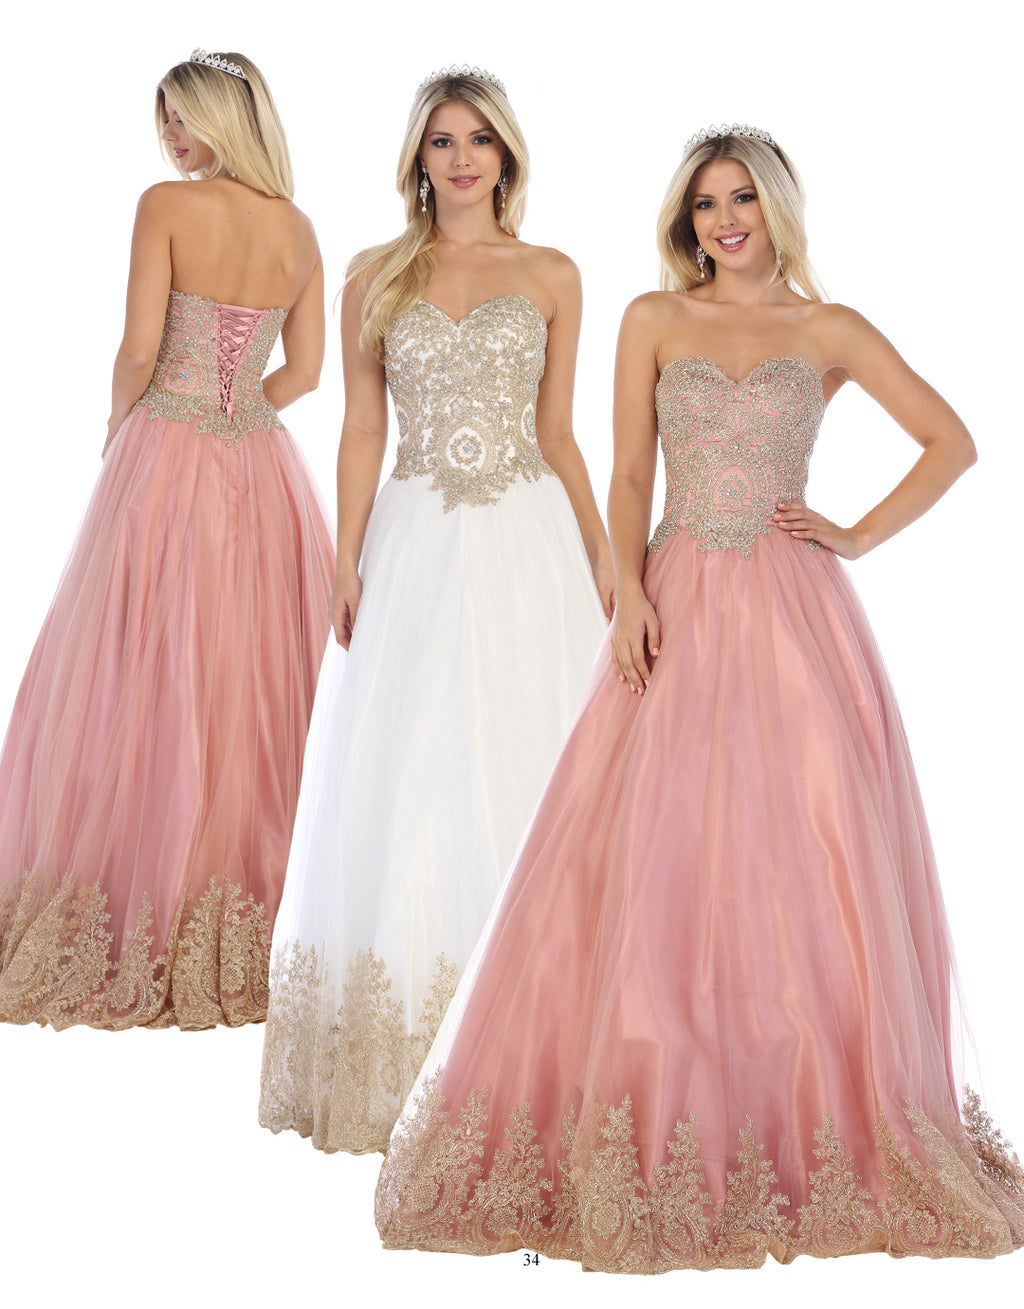 Princess Ball Gown With Lace & Austrian Crystal Embroidery | Norma Reed